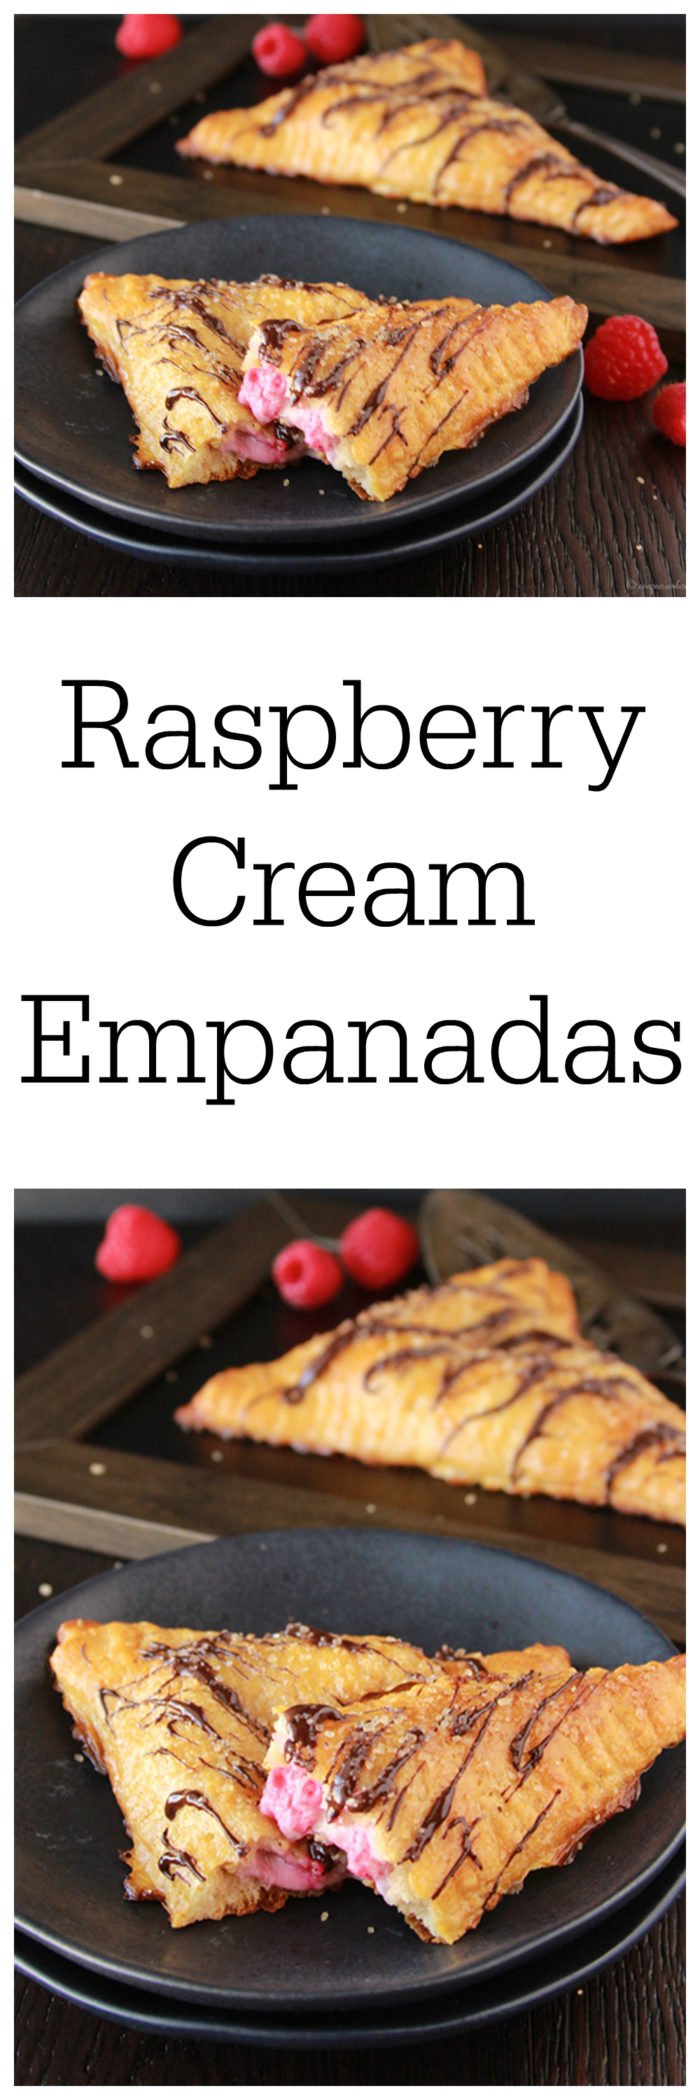 Raspberry Cream Empanadas are every bit as good as they look! Flakey pastry outside with raspberry cream inside AND then drizzled with chocolate! on www.cookingwithruthie.com